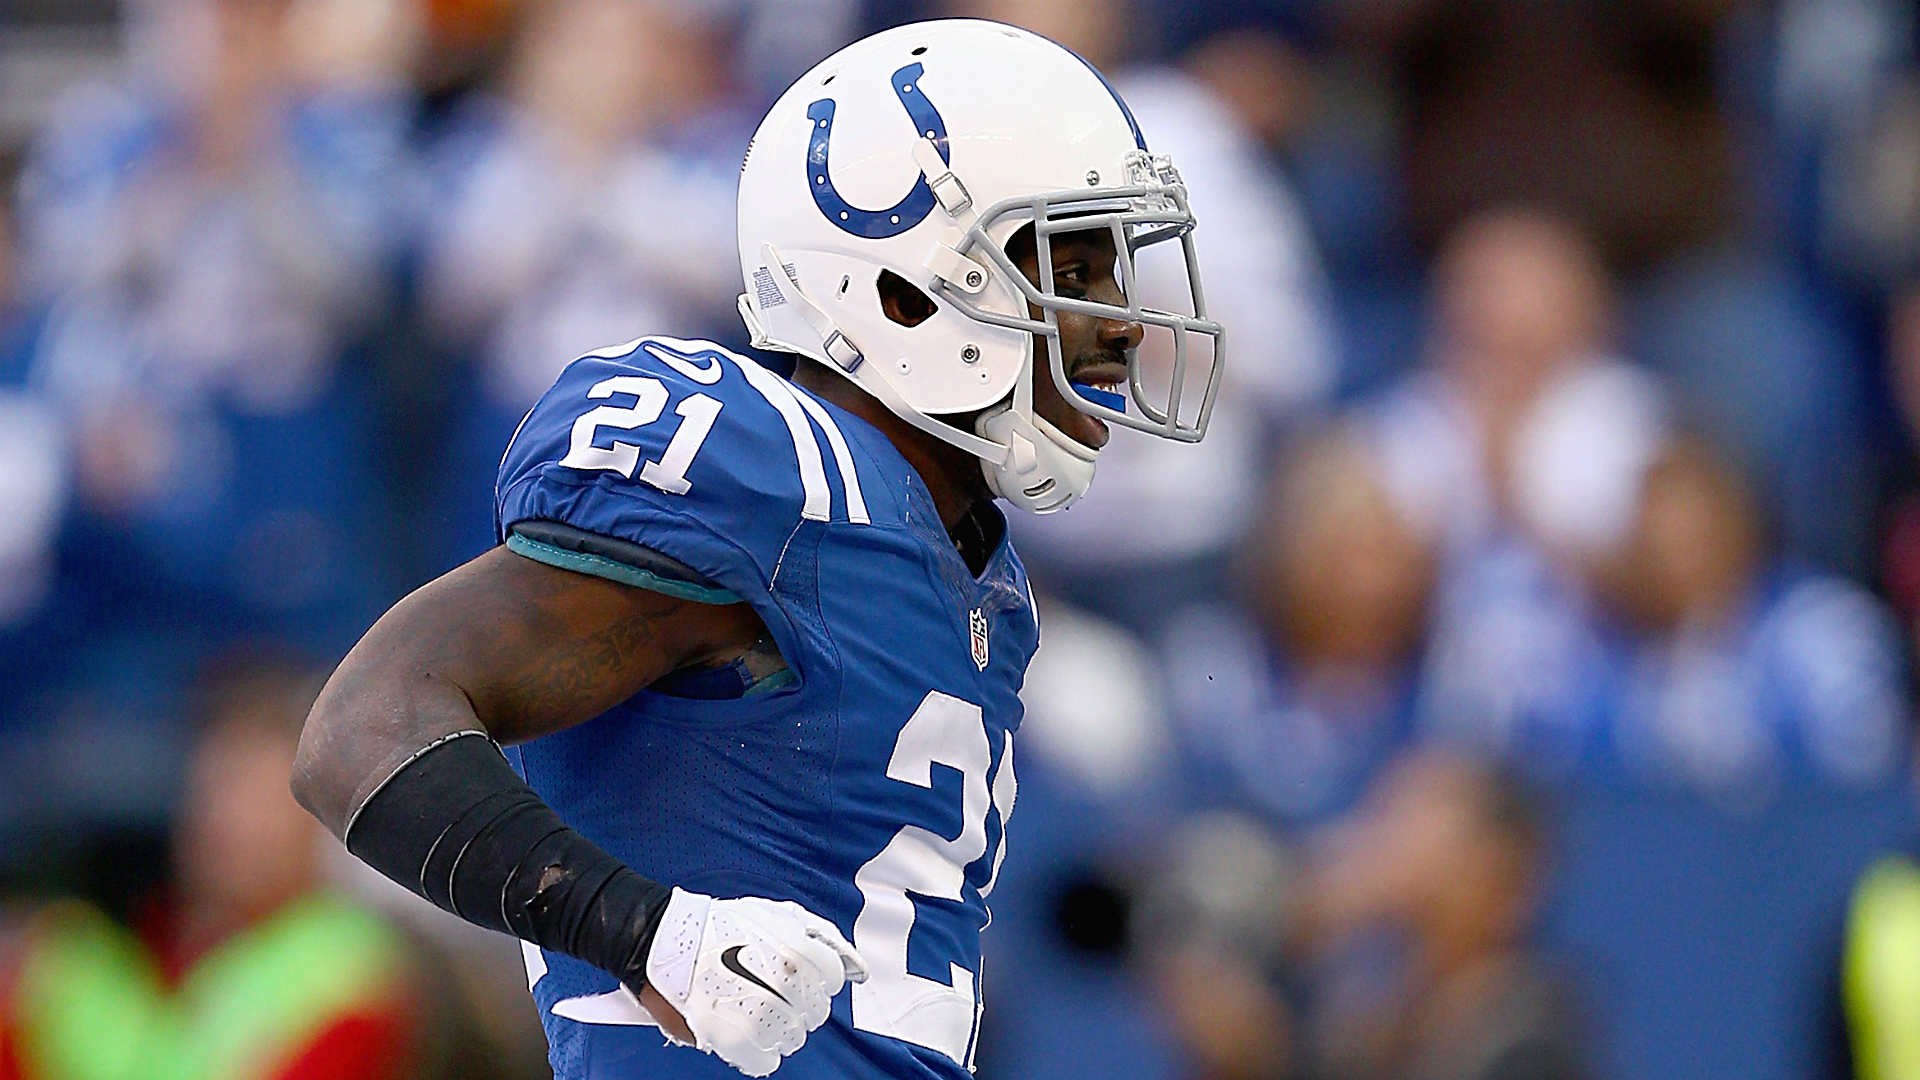 Chris Ballard: Vontae Davis was cleared medically, hasn't played very well